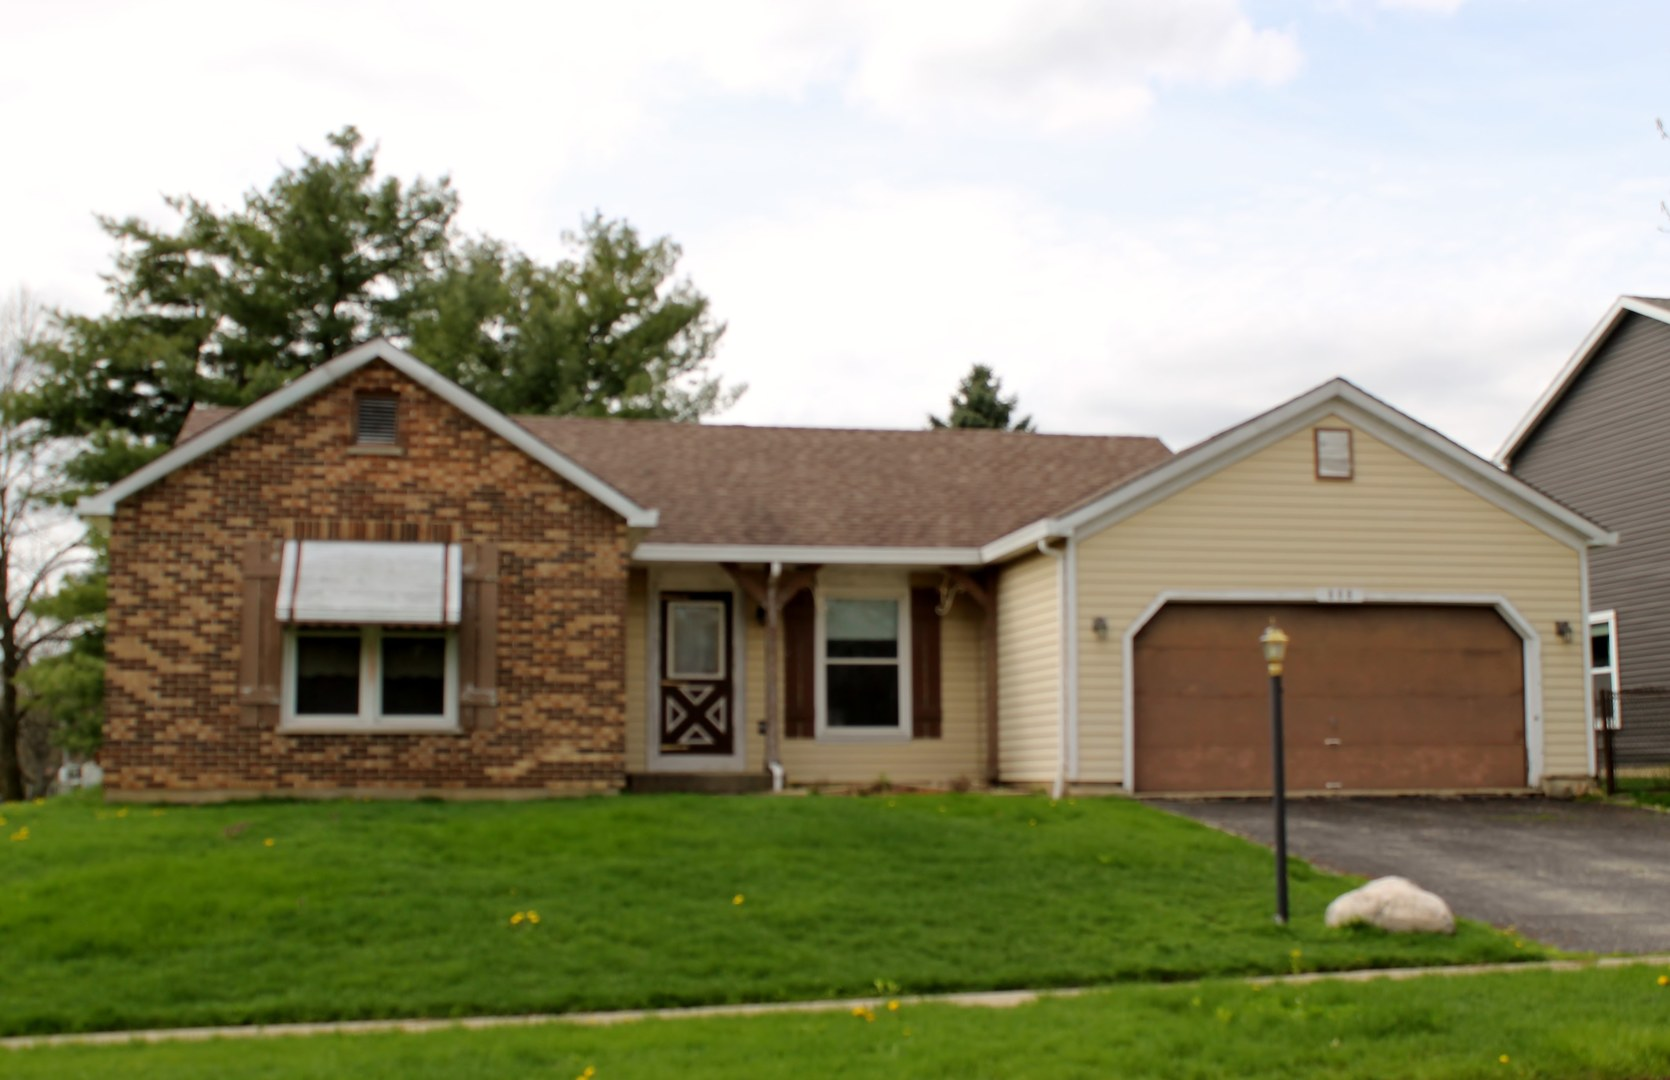 Photo for 808 Brentwood Drive, CARY, IL 60013 (MLS # 10327803)